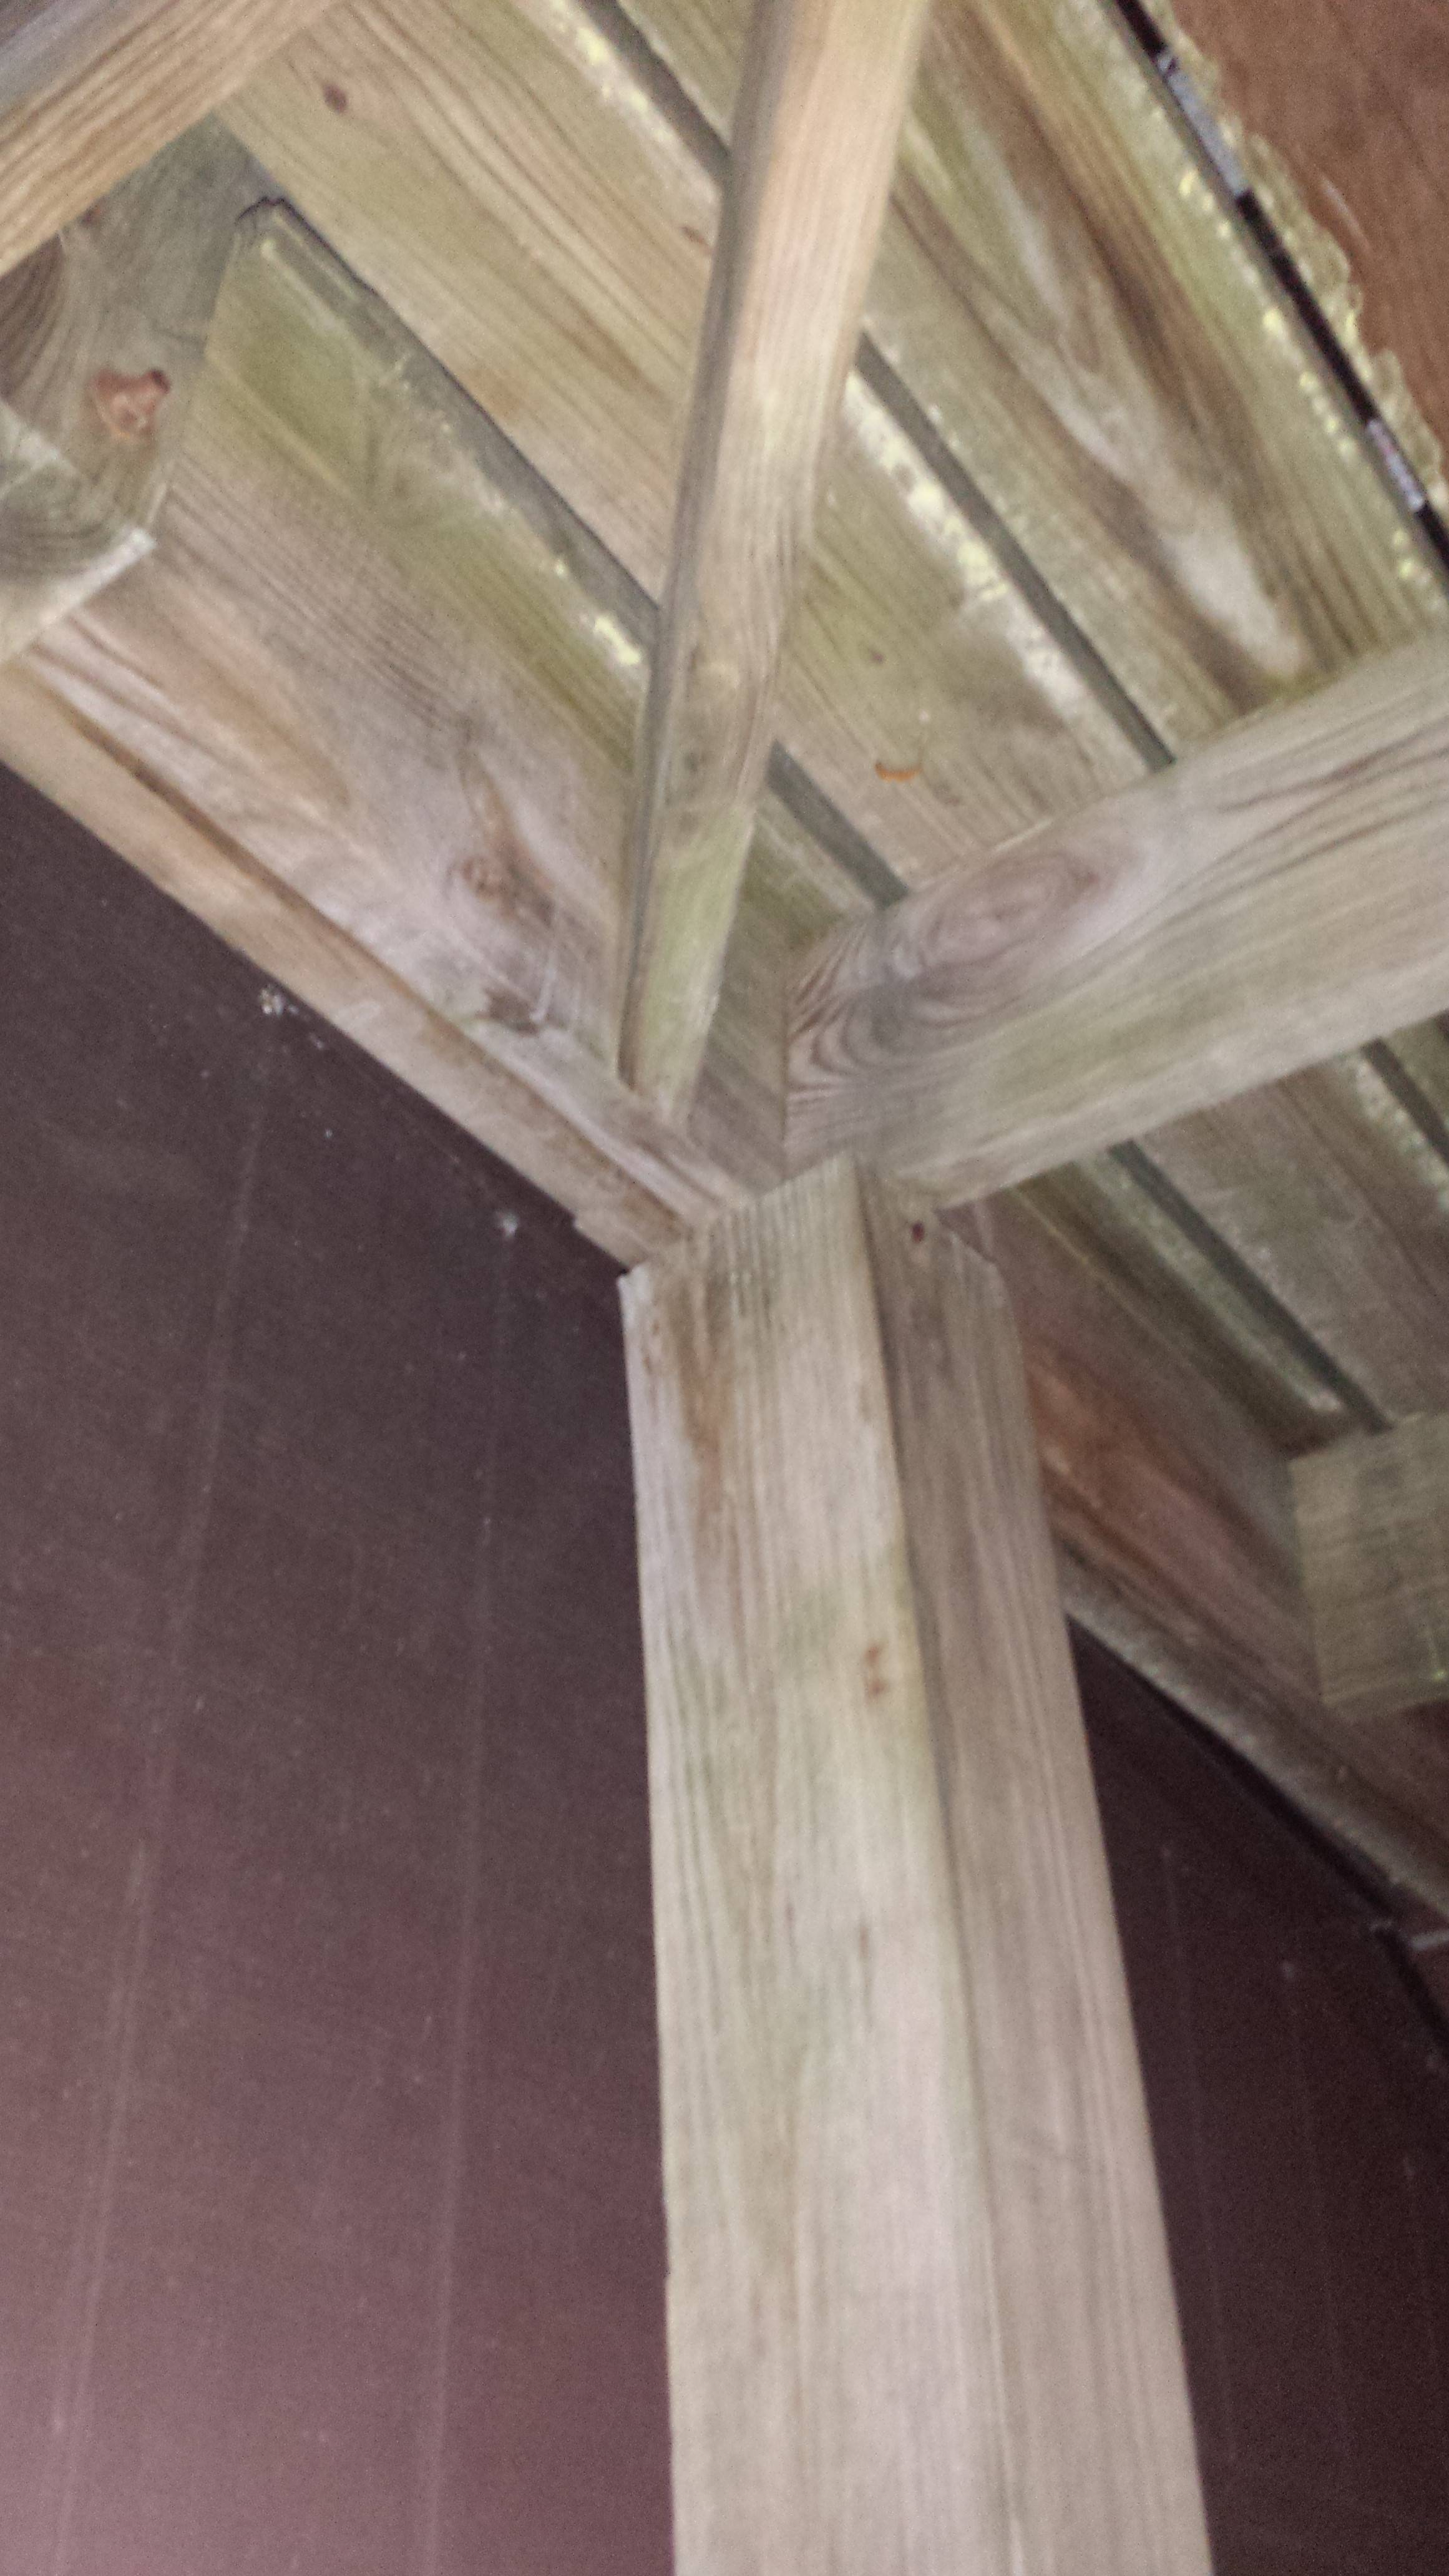 How To Install 4×4 Post On Concrete